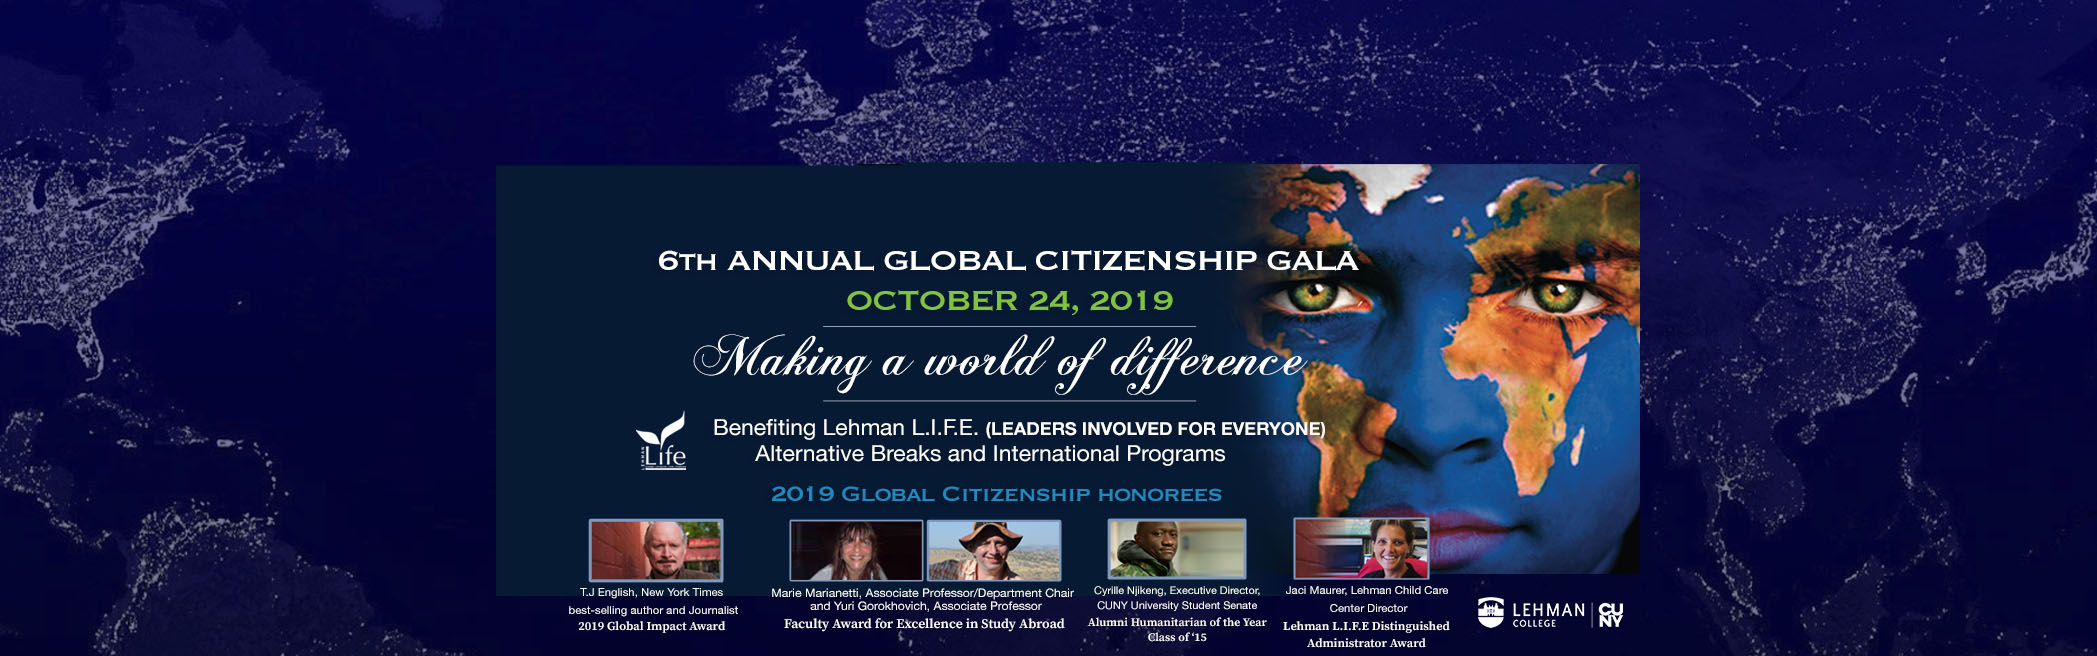 2019 Annual Global Citizenship Gala